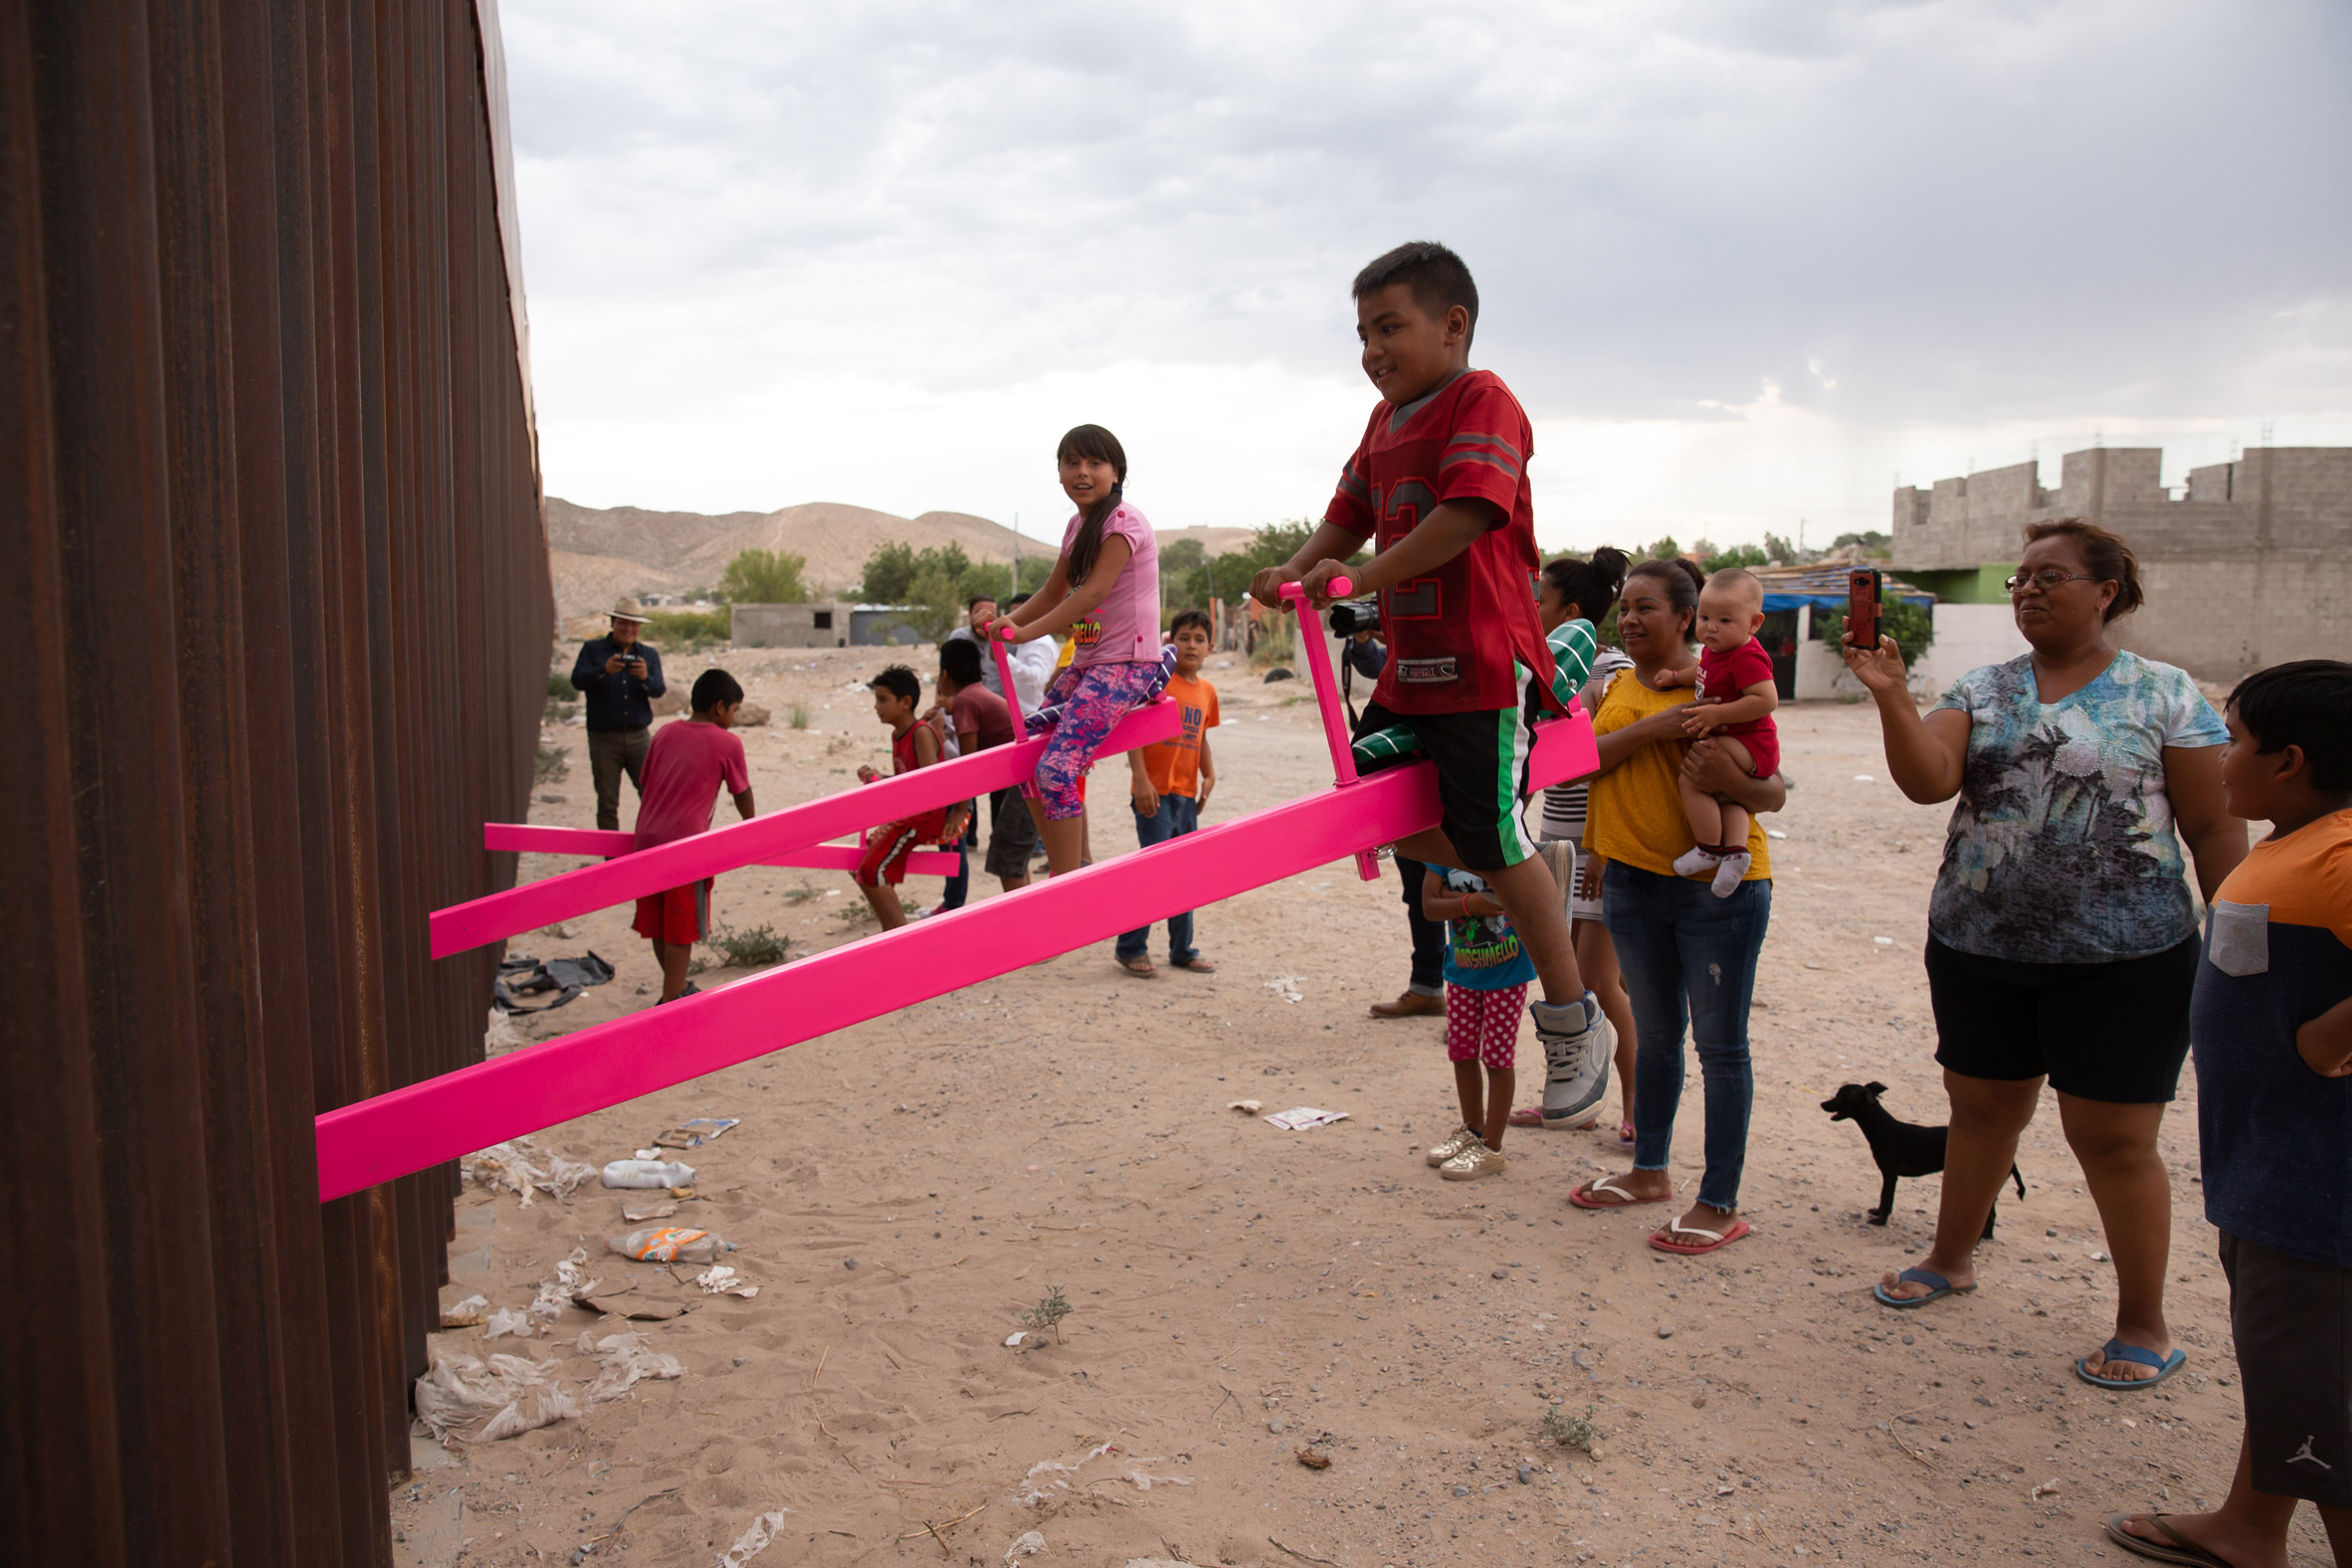 Us-Mexico border seesaws by Rael San Fratello is Design of the Year 2020